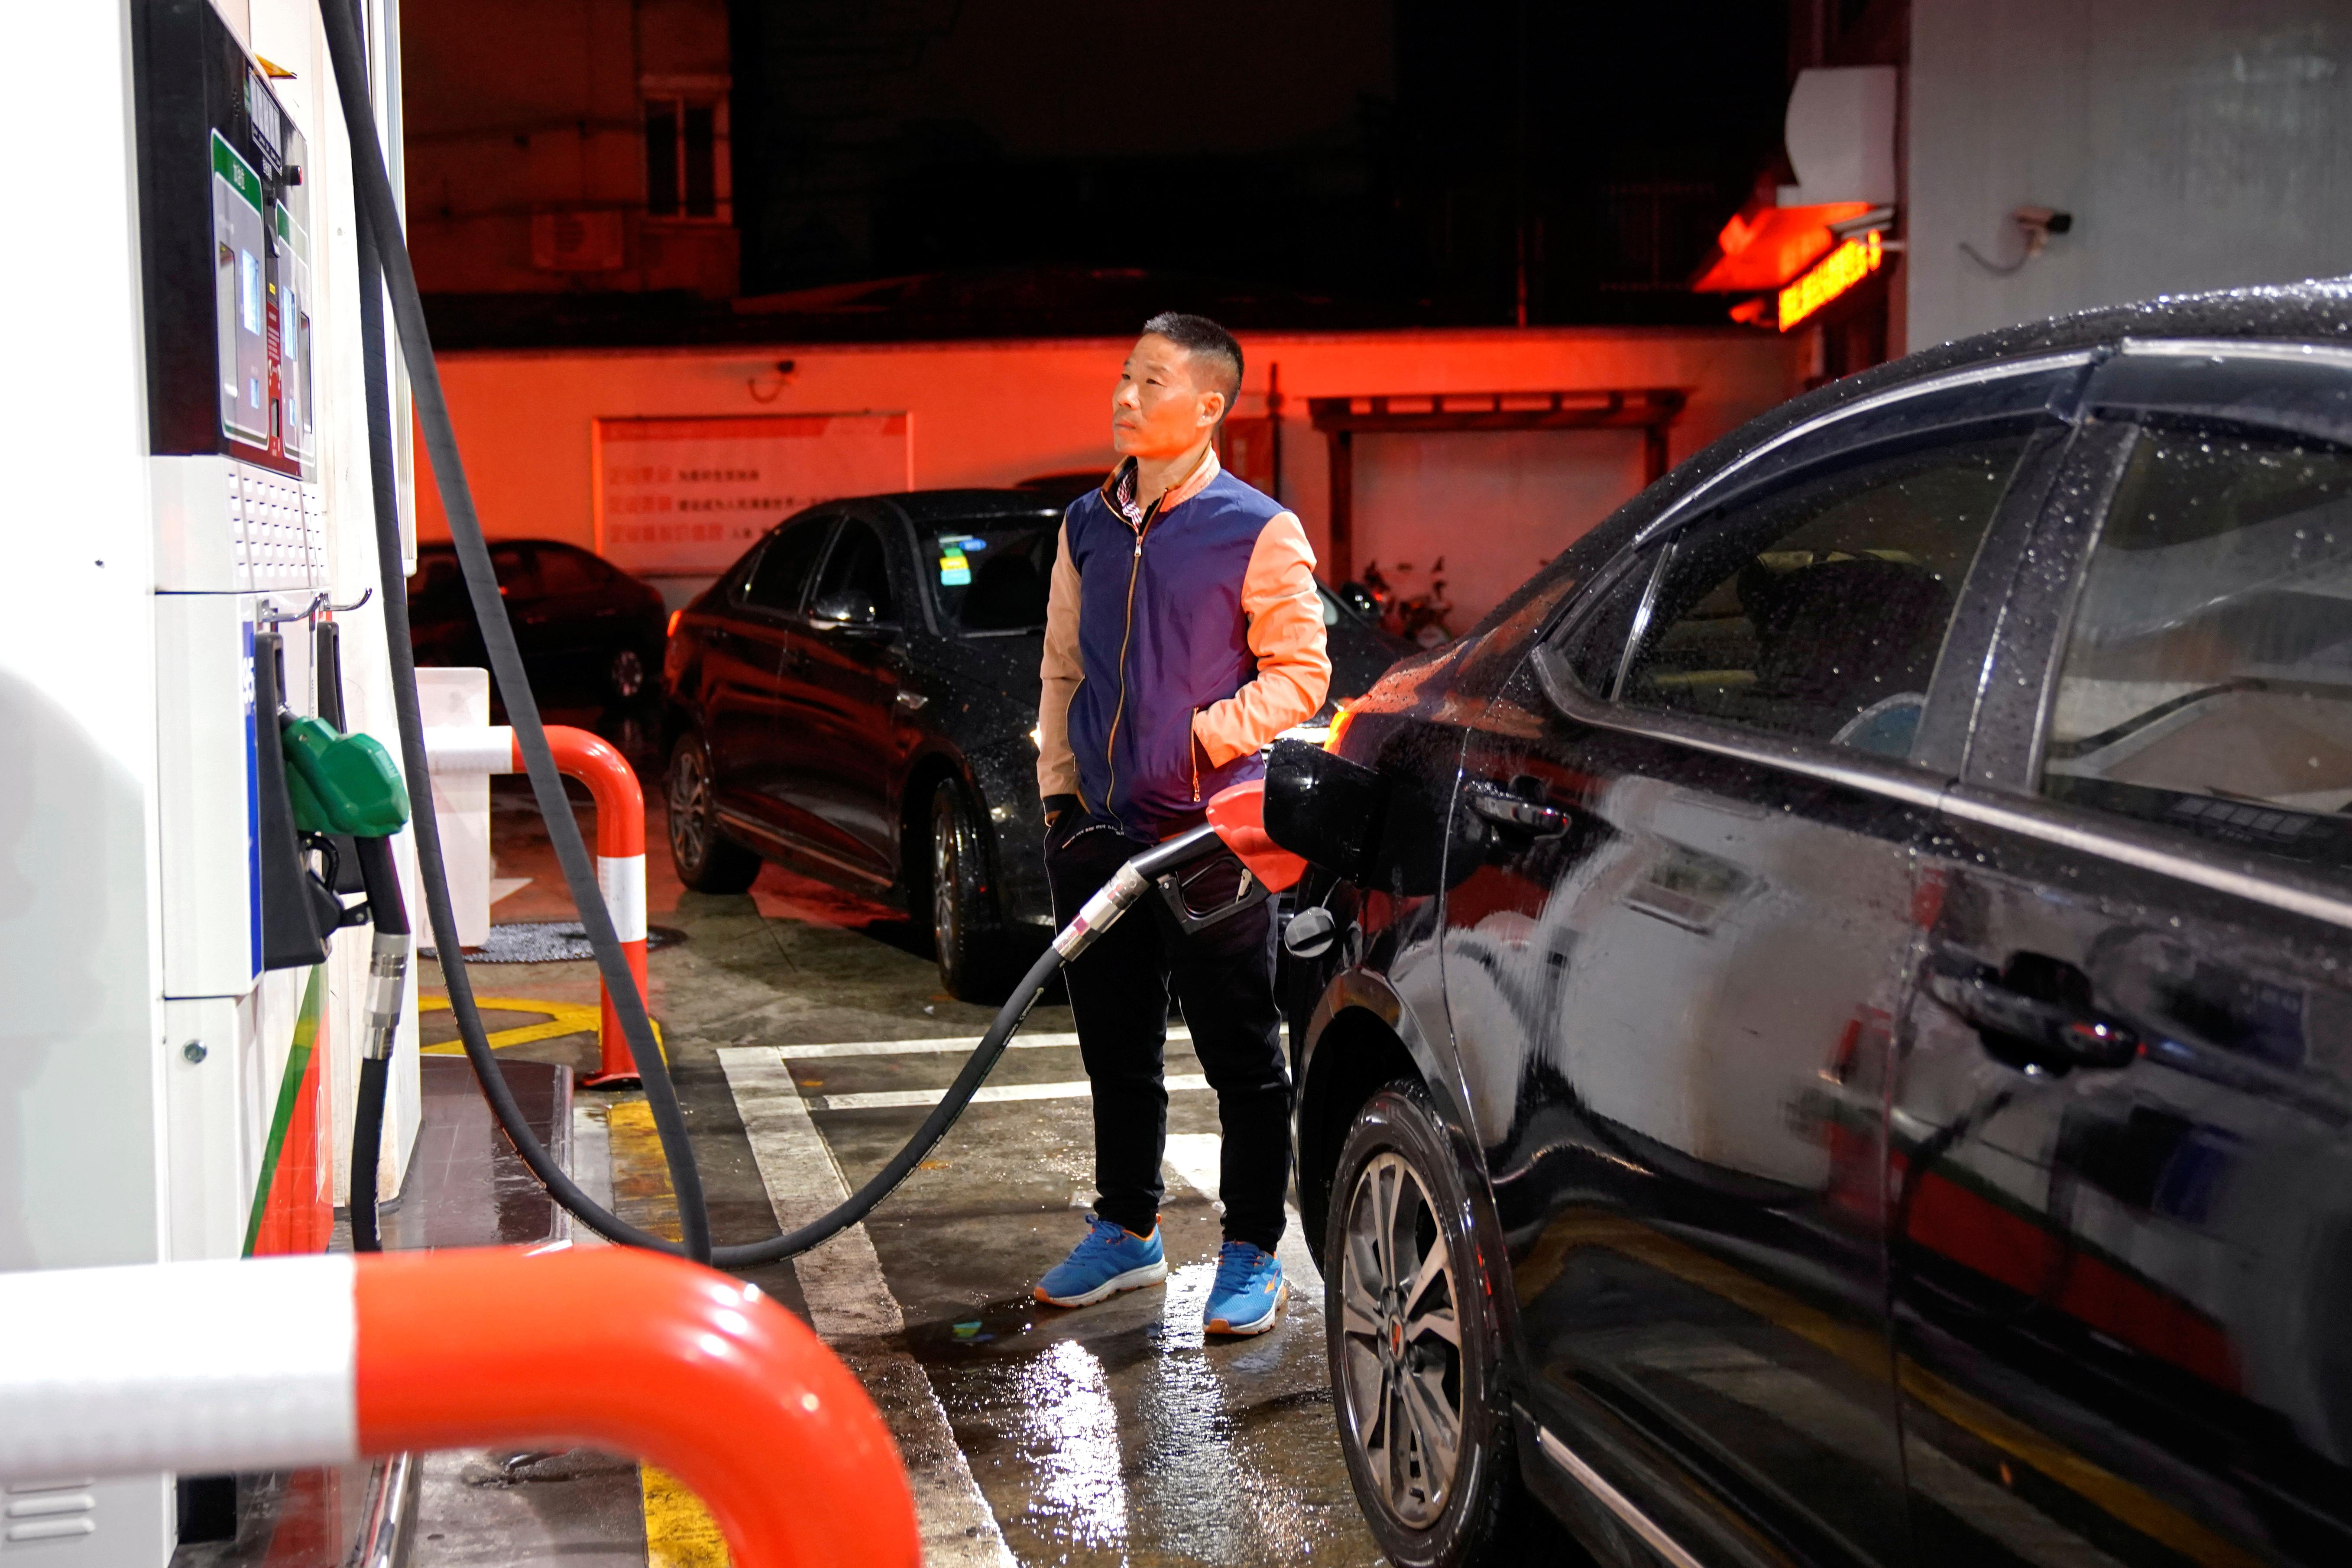 A driver looks at the price as he fills the tank of his car at a gas station in Shanghai, China November 17, 2017. Aly Song